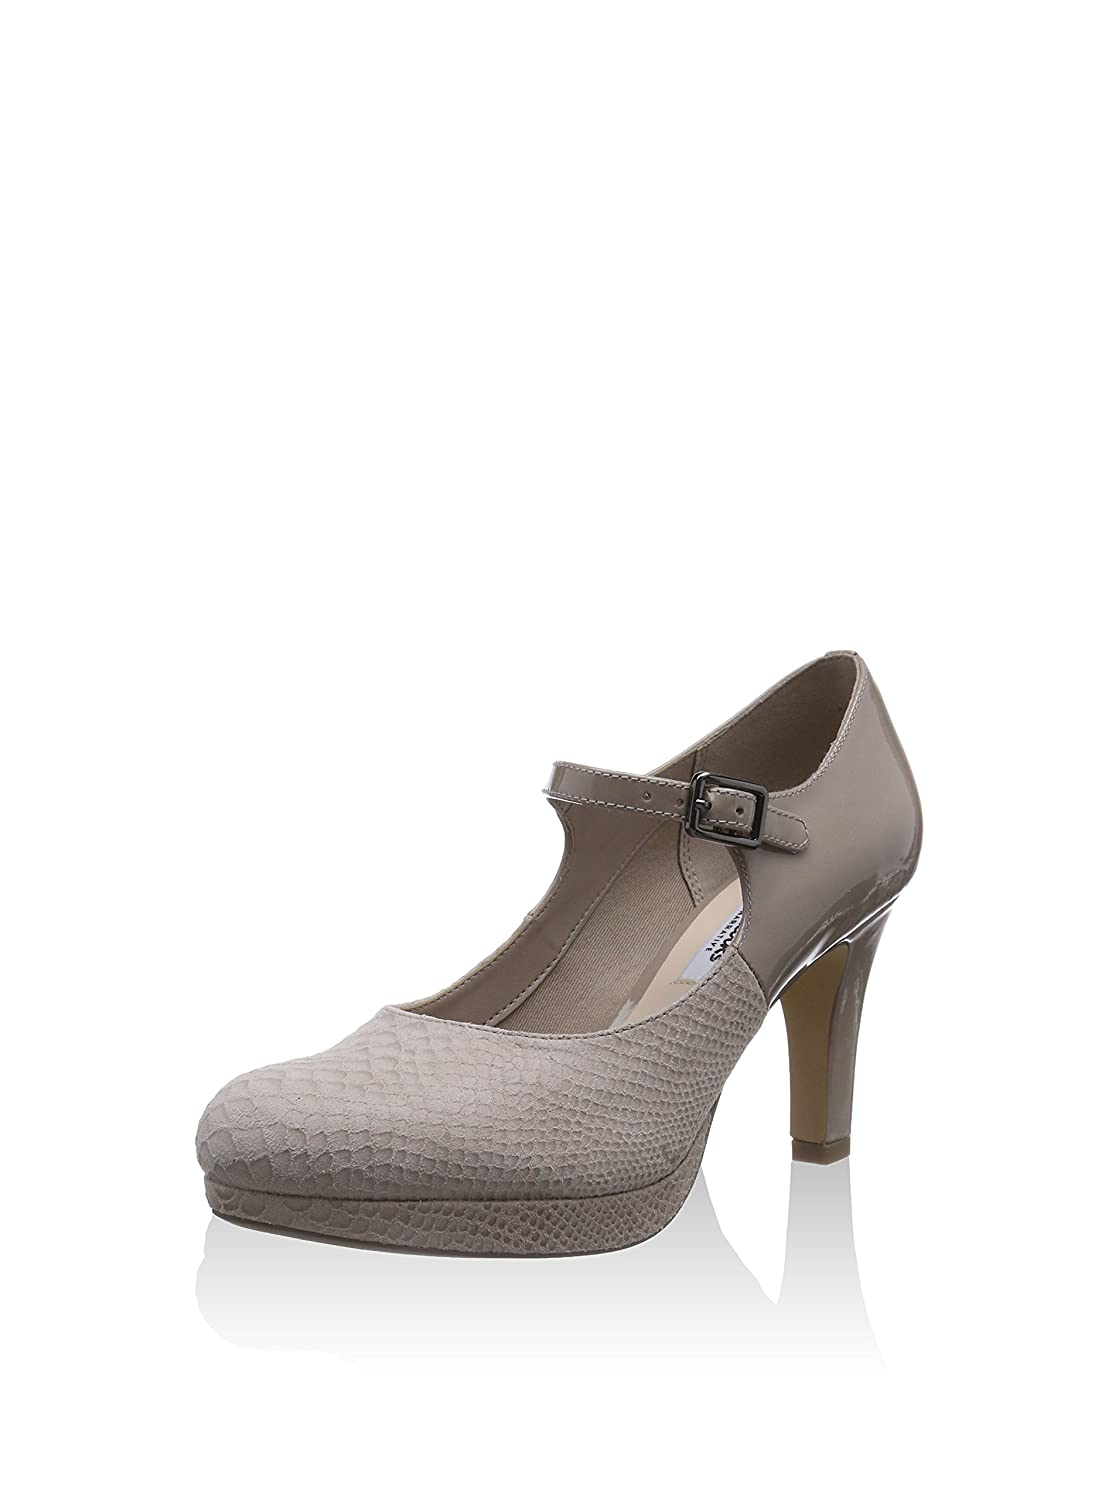 NEW CLARKS  NARRATIVE KENDRA GABY BROWN LEATHER COURT SHOES SIZE 5 5.5 /& 6